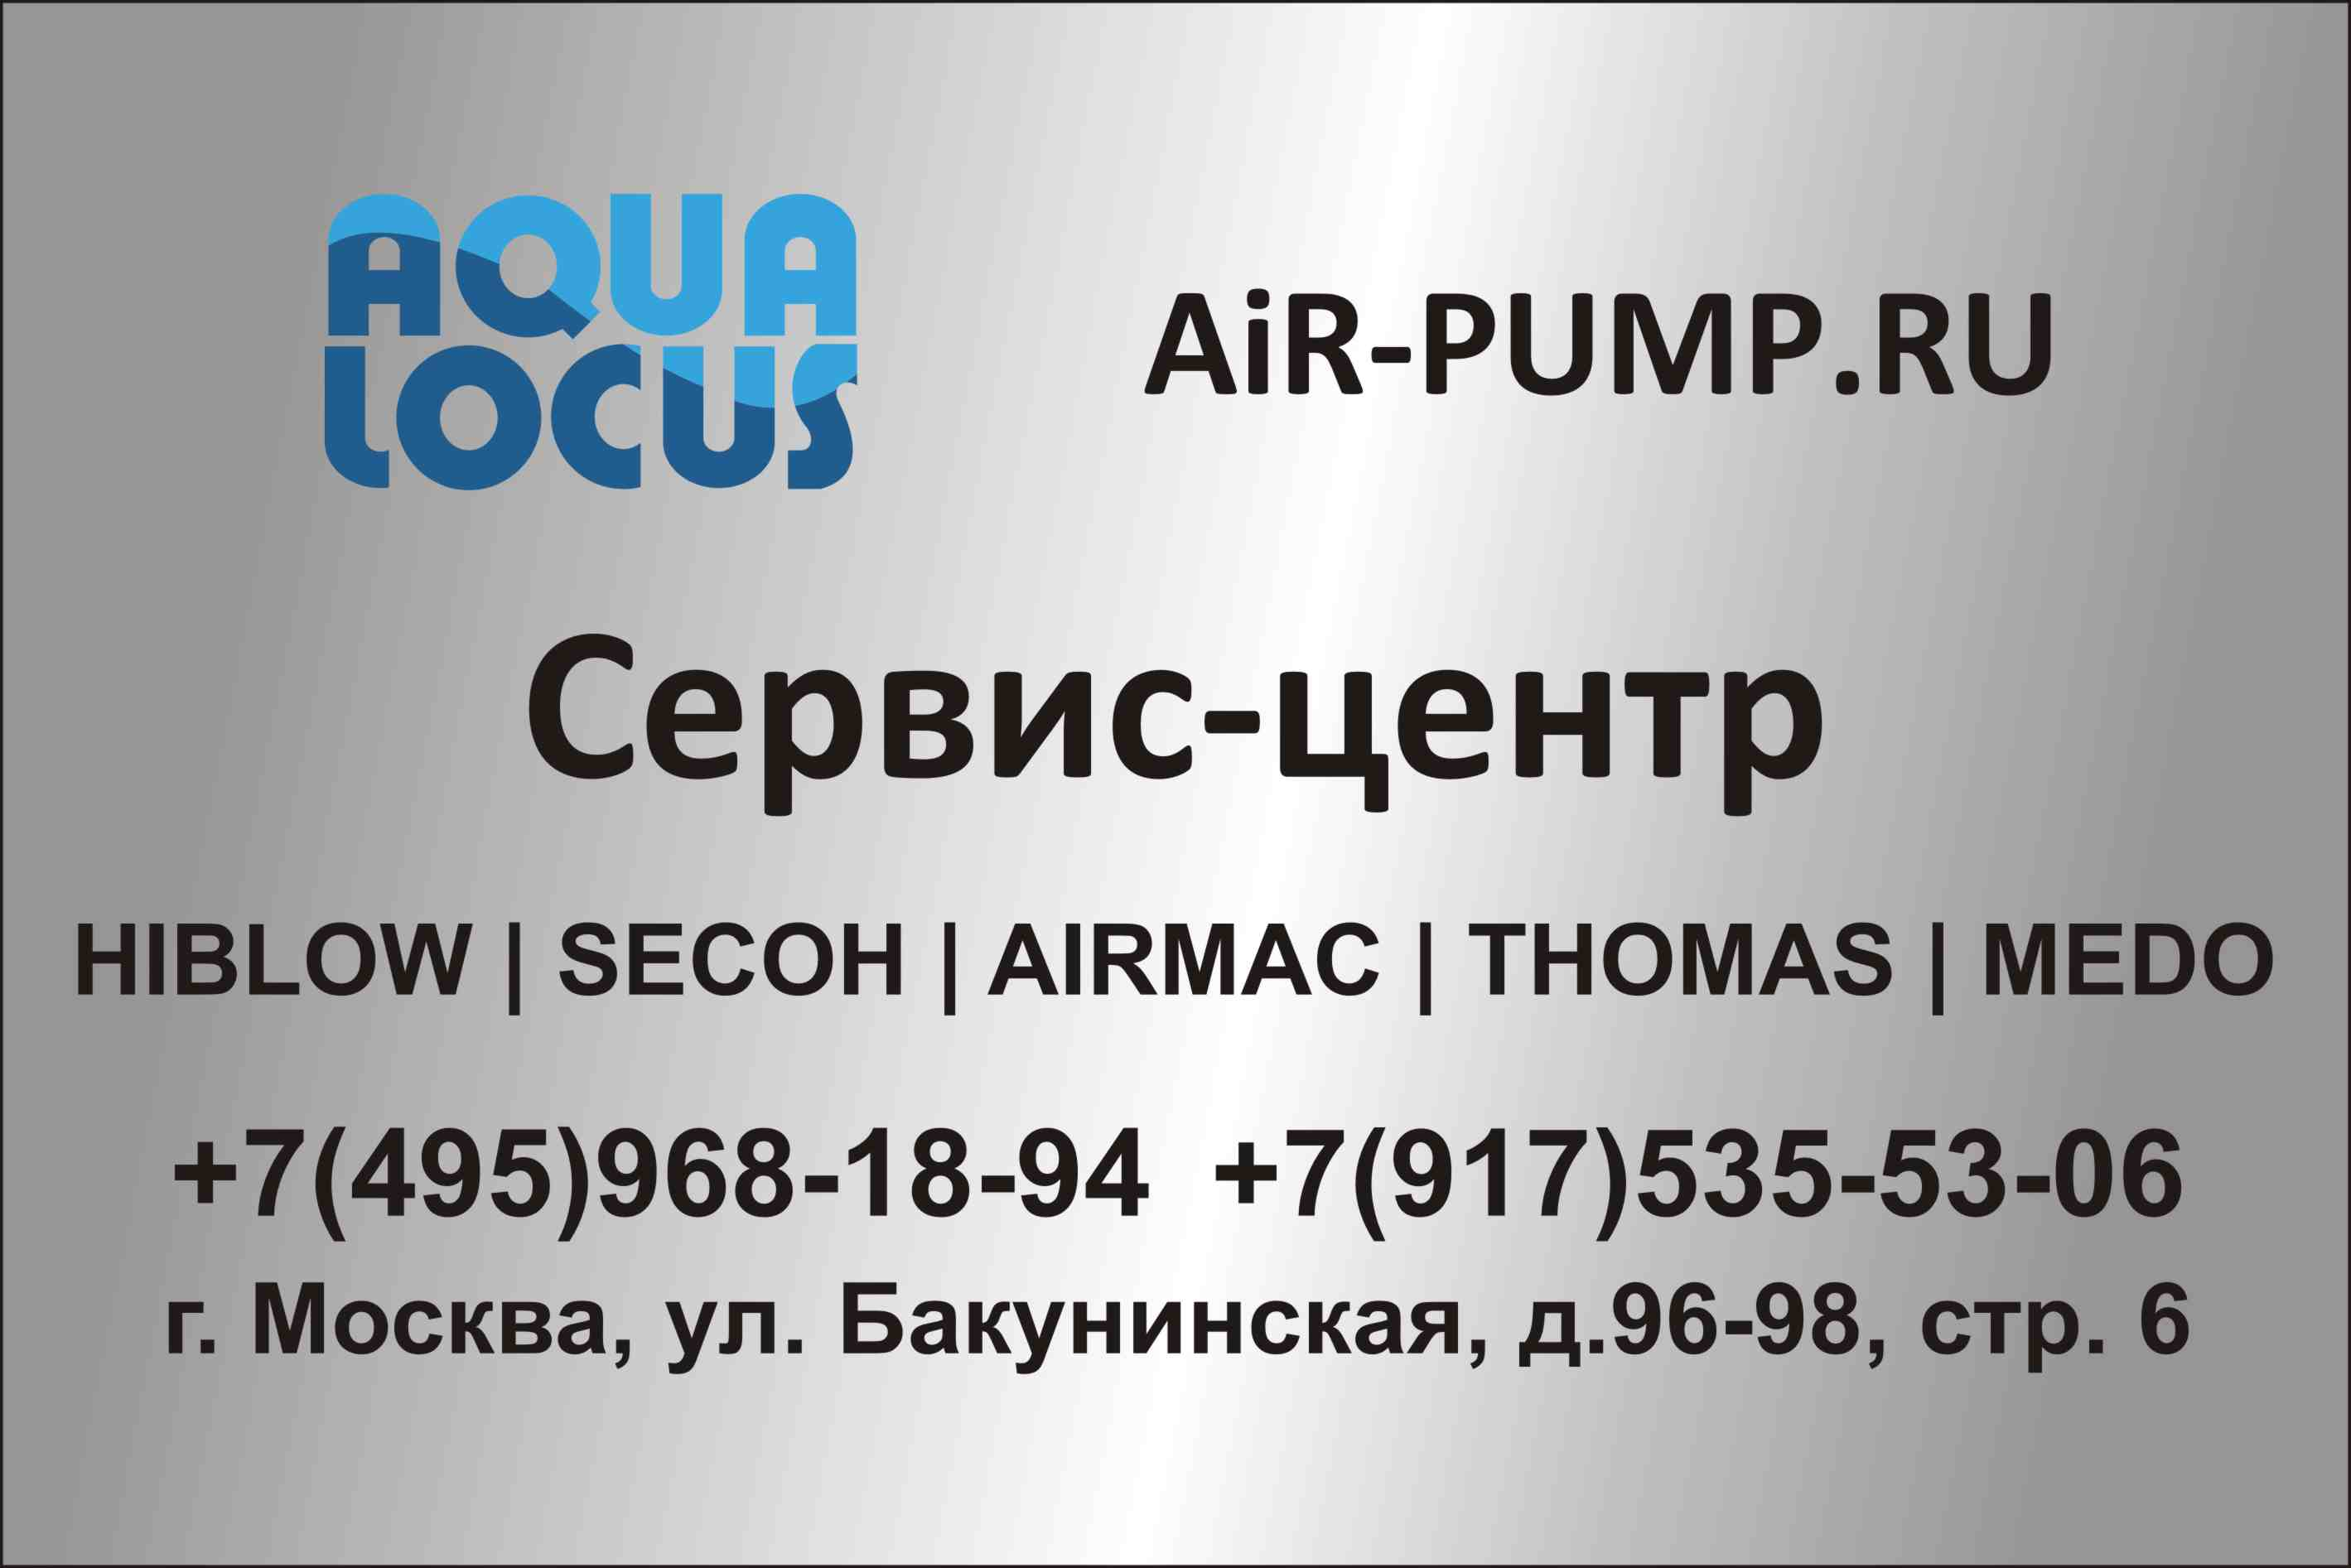 Ремонт air pump: HIBLOW, SECOH, AirMac, THOMAS, HAILEA, КИТ АЭРО